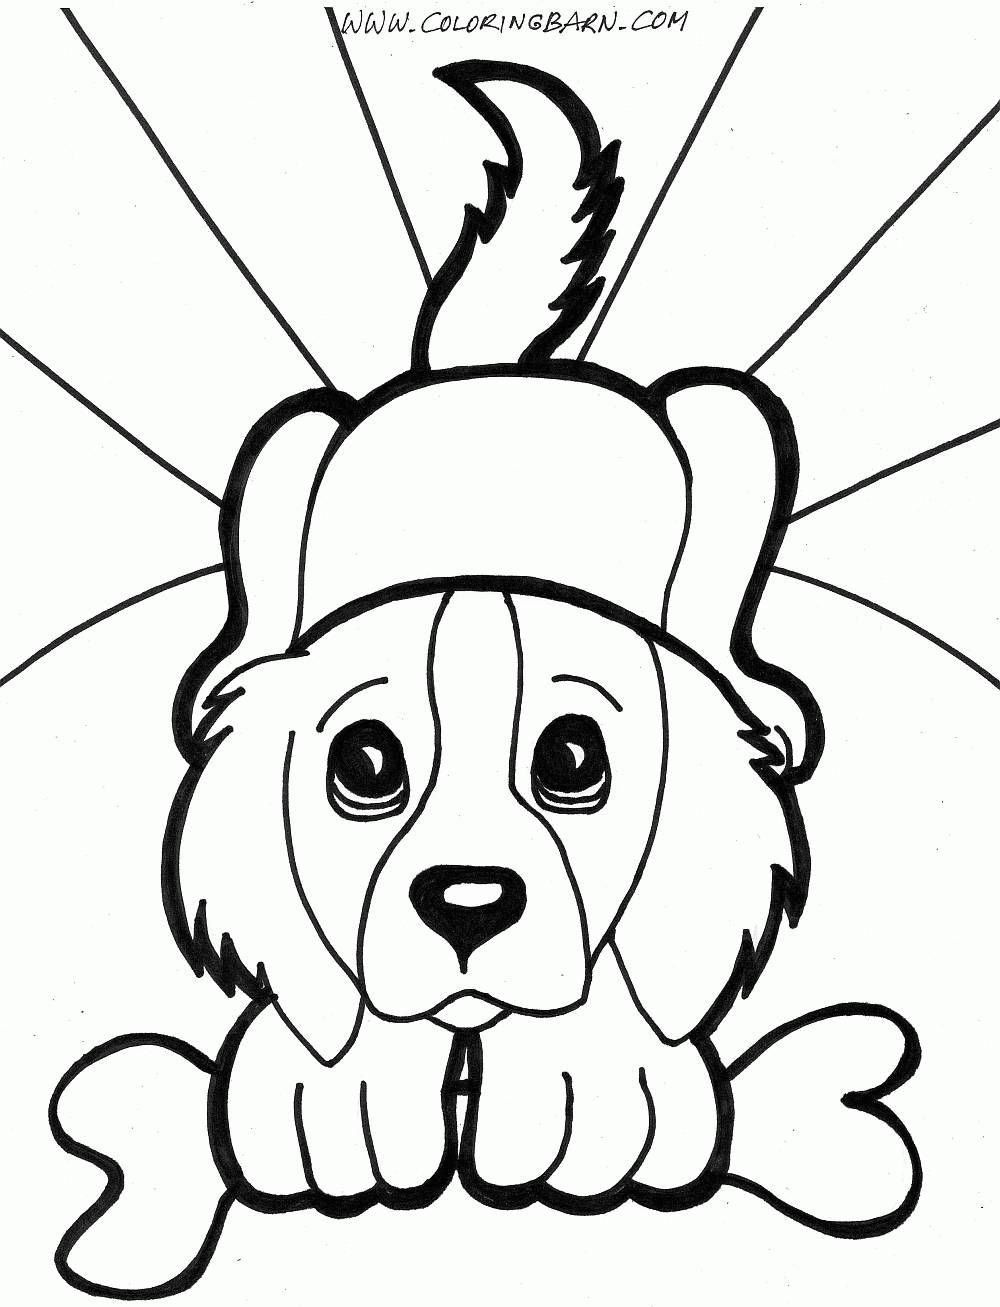 1000x1307 Simple Animal Drawing Puppy Coloring Pages For All Agespuppy